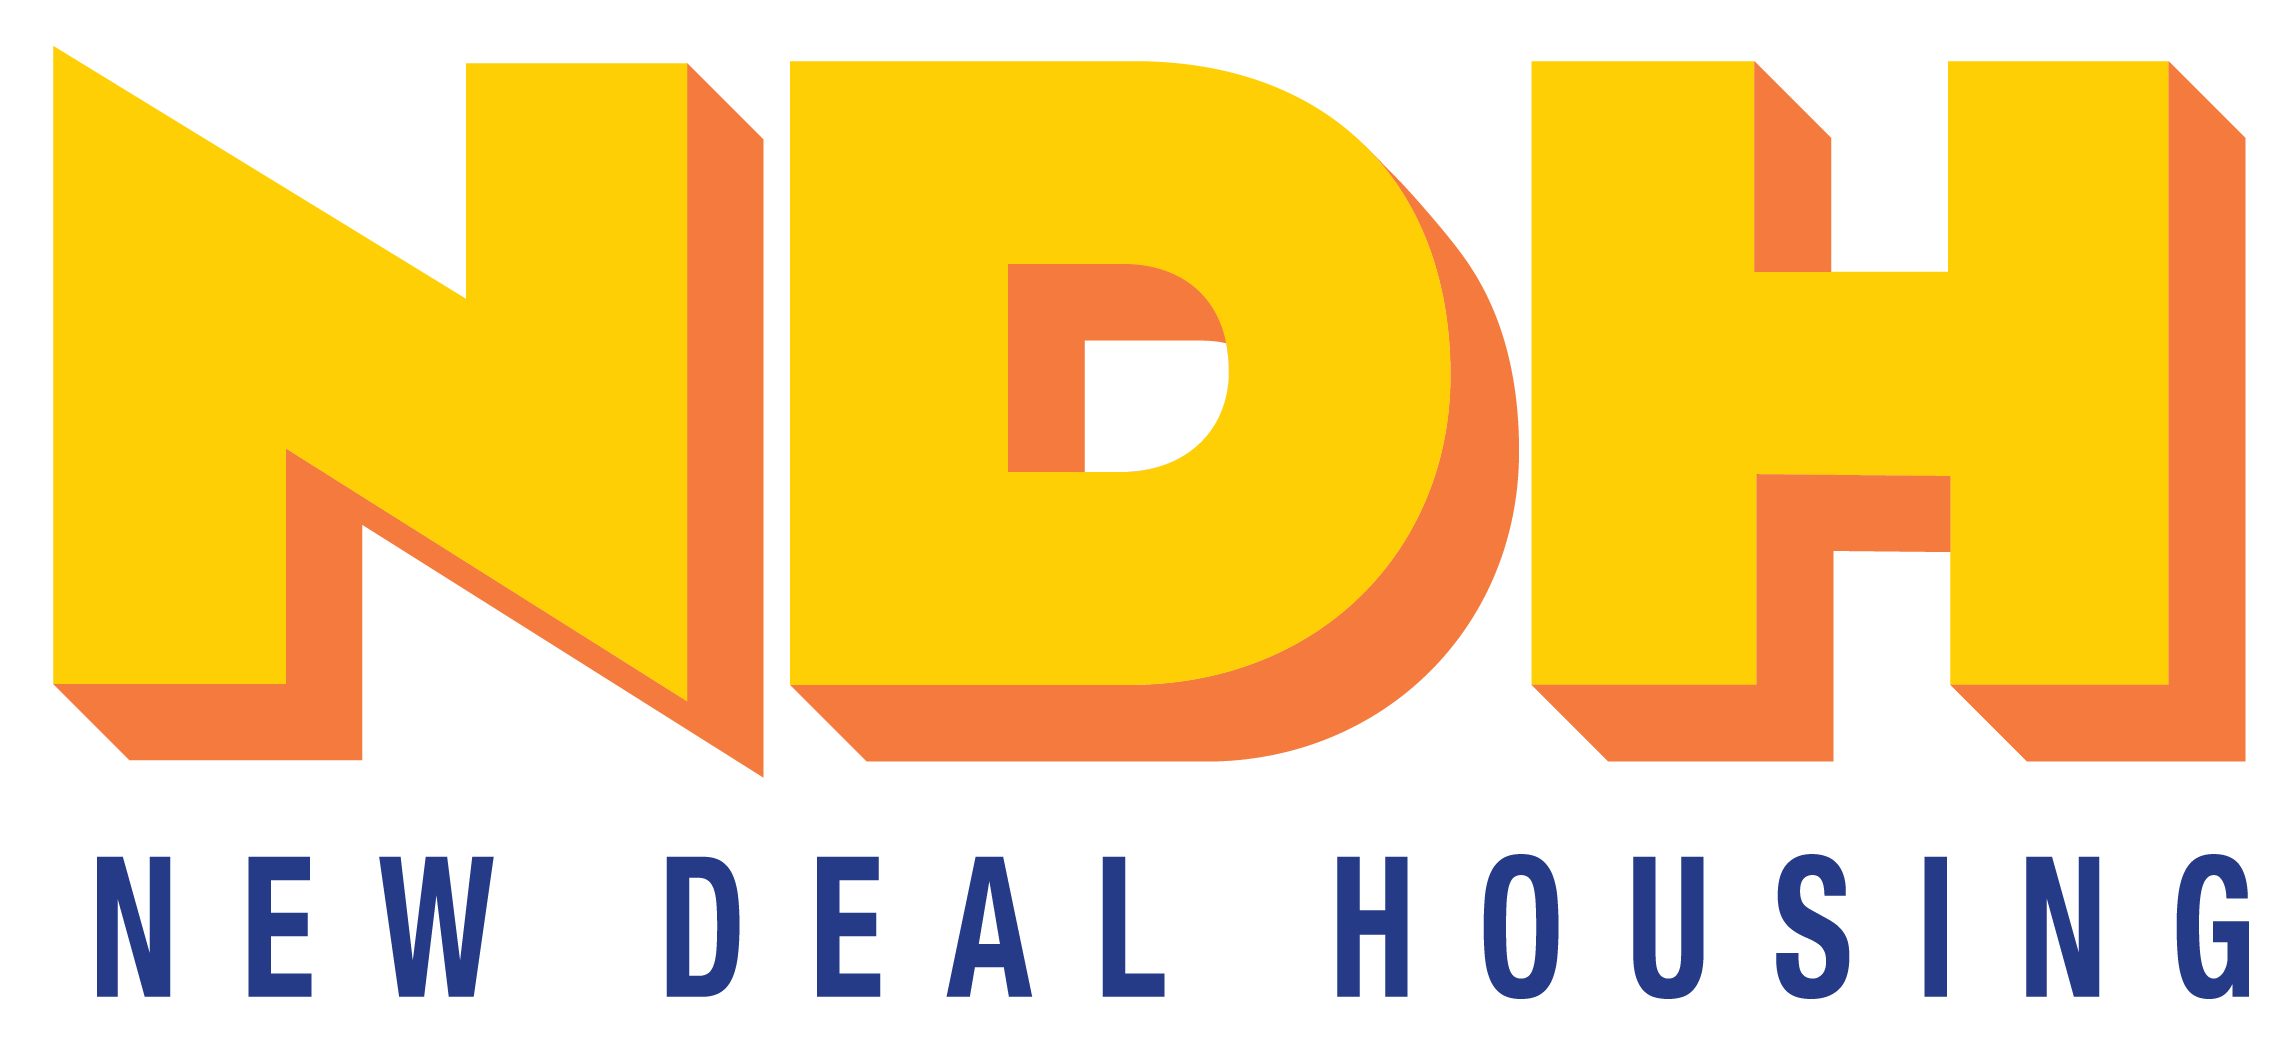 NDH logo-final_large-01.png